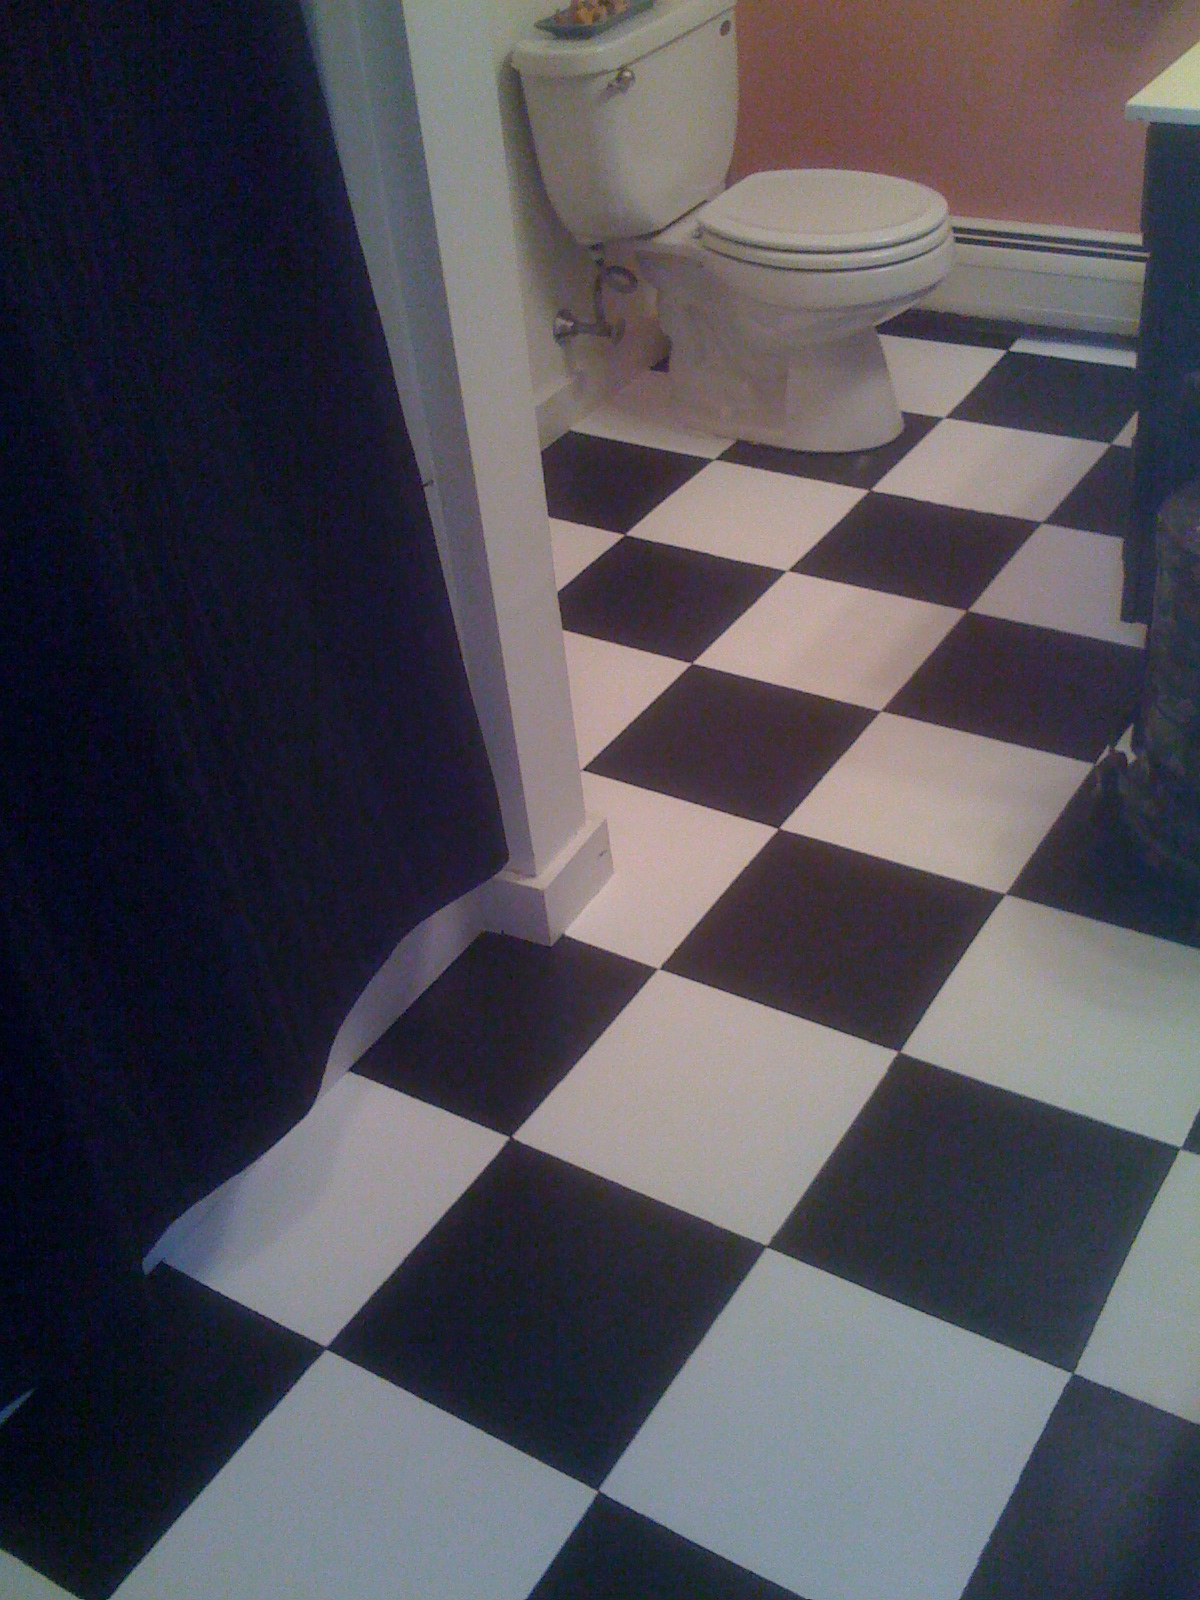 Diy painting old vinyl floor tiles mary wiseman designs the whole bathroom appears bigger cleaner and the eye is fooled into thinking these are actual tiles when i just painted over the old vinyl floor tiles doublecrazyfo Images